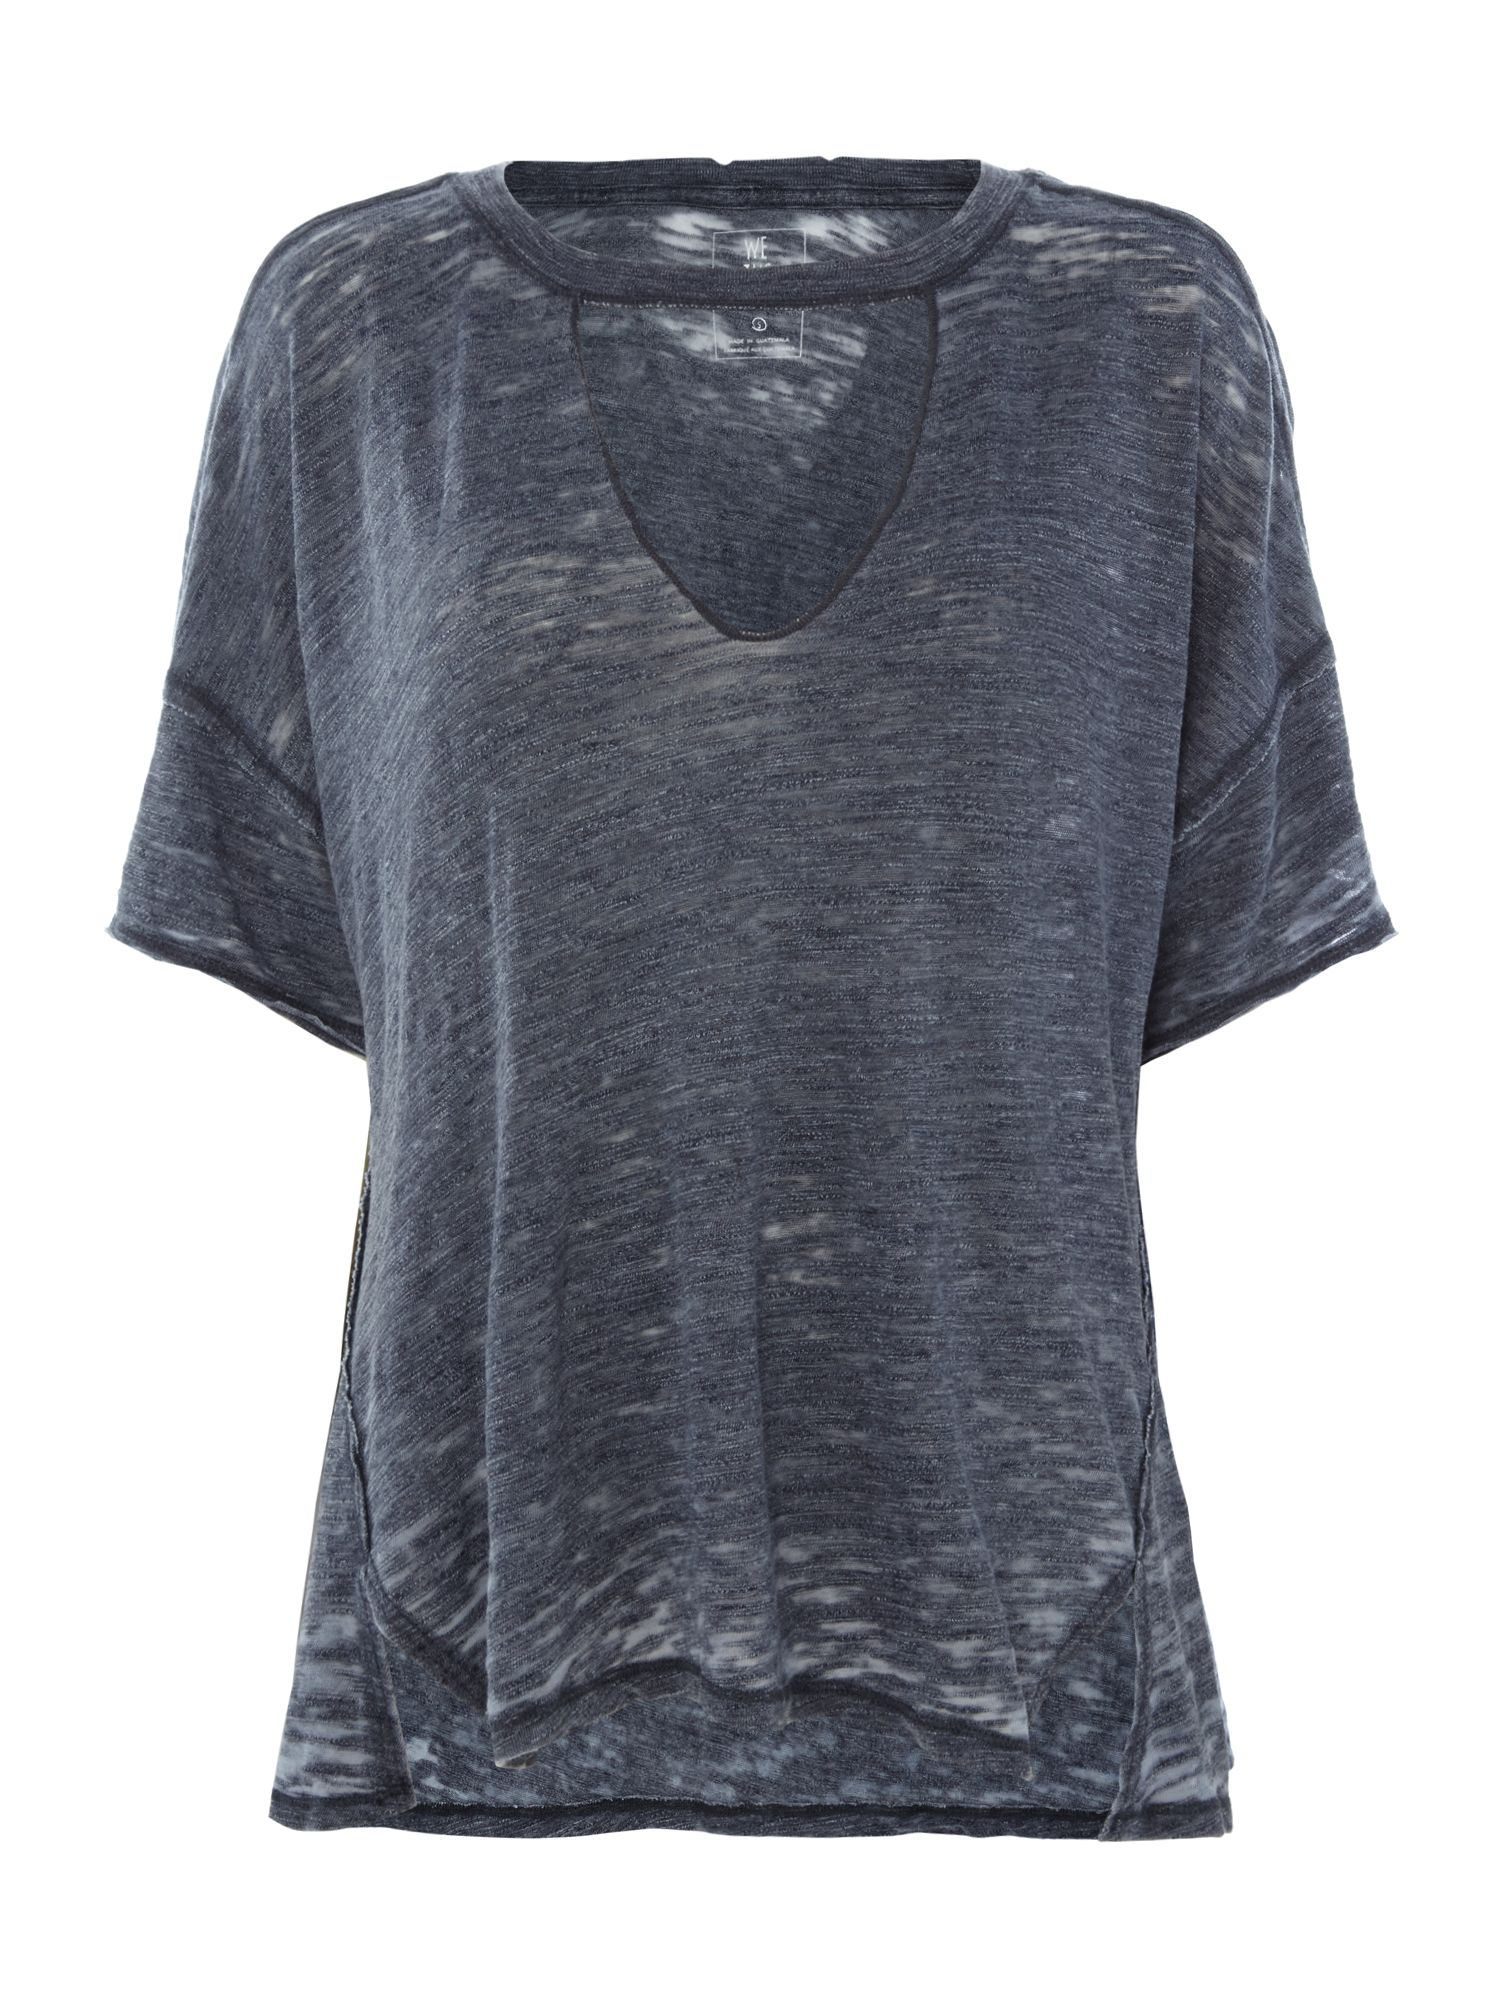 Free People Jordan T-Shirt With Deep V-Neck, Blue